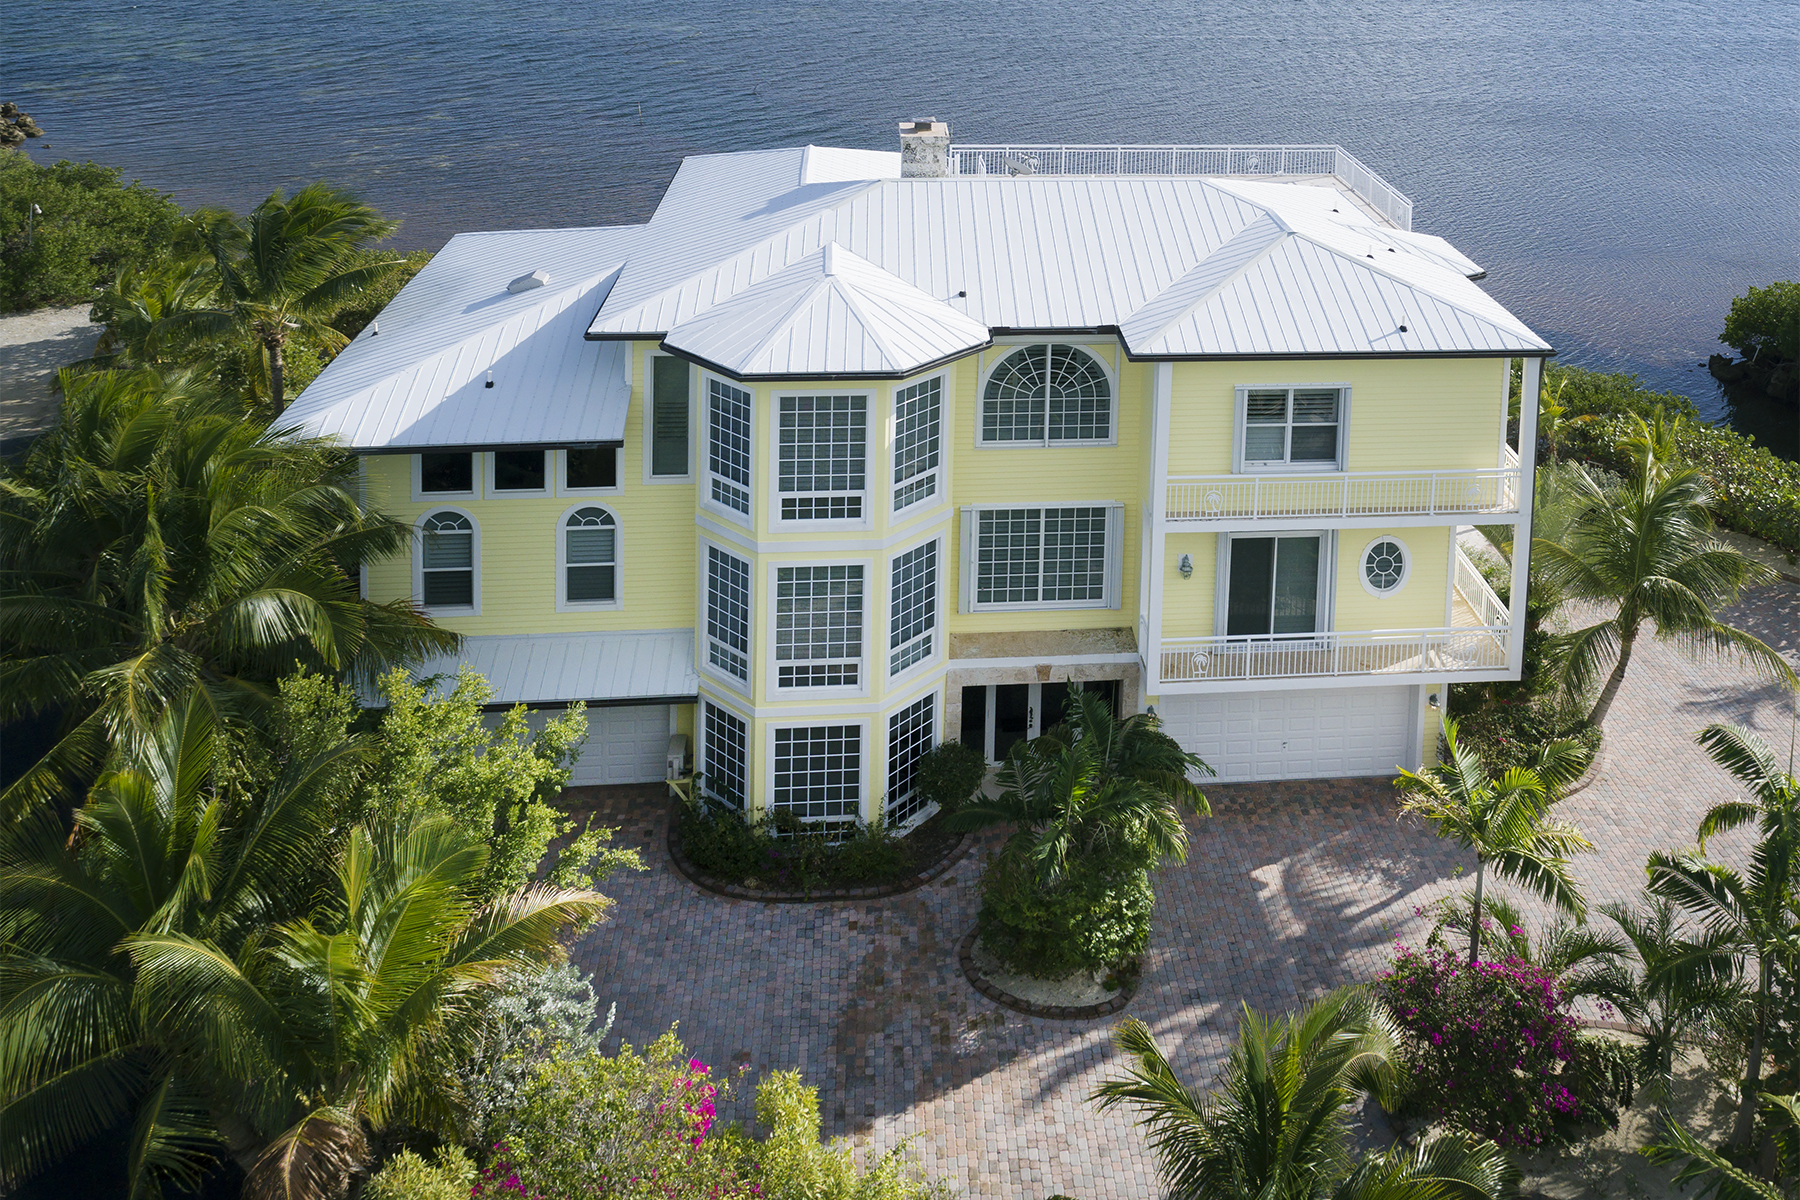 Maison unifamiliale pour l Vente à Oceanfront Home with Guest House 97251 Overseas Highway North Side Key Largo, Florida, 33037 États-Unis